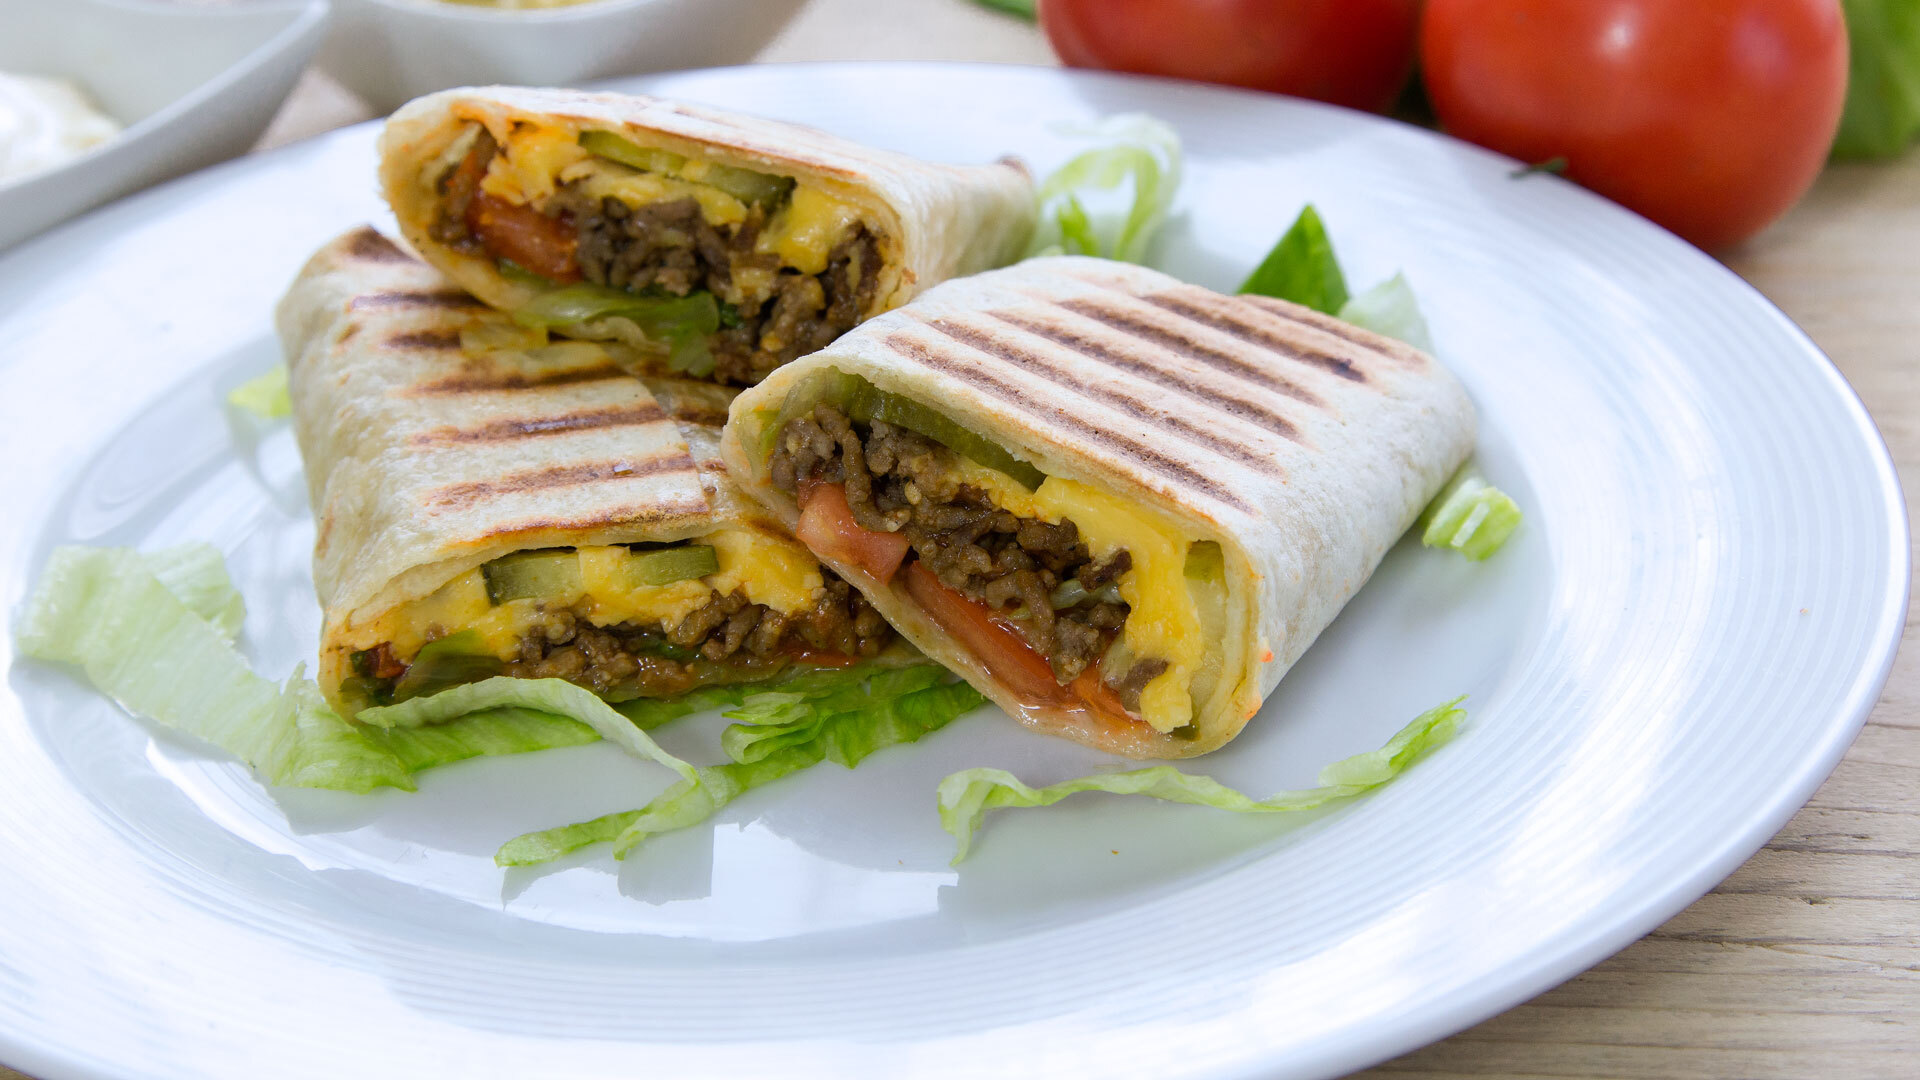 Wrap Cheeseburger